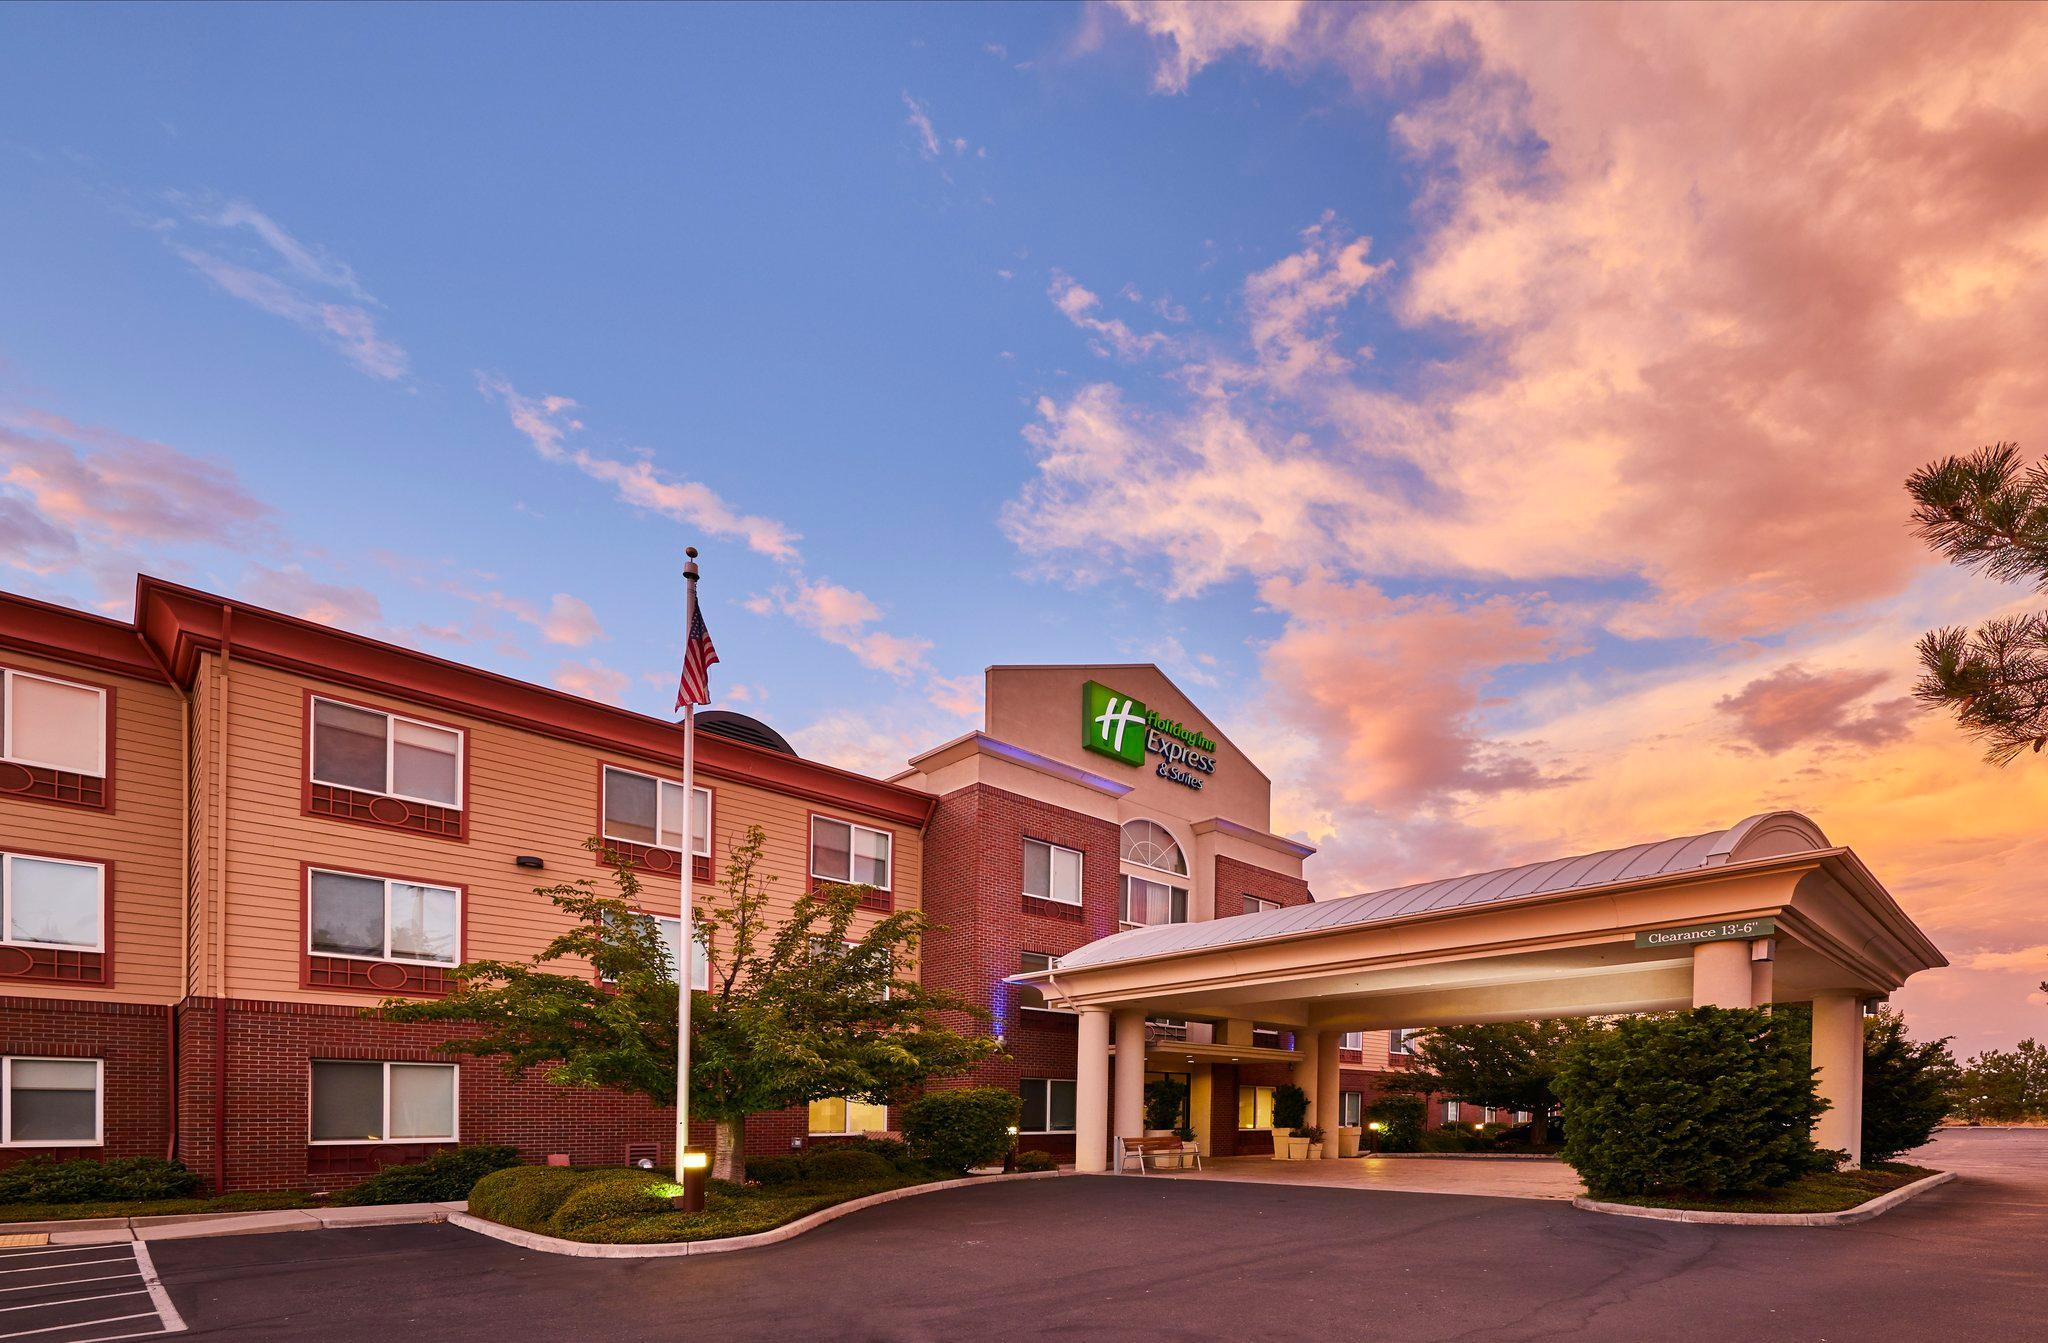 Holiday Inn Express Hotel And Suites Medford Central Point